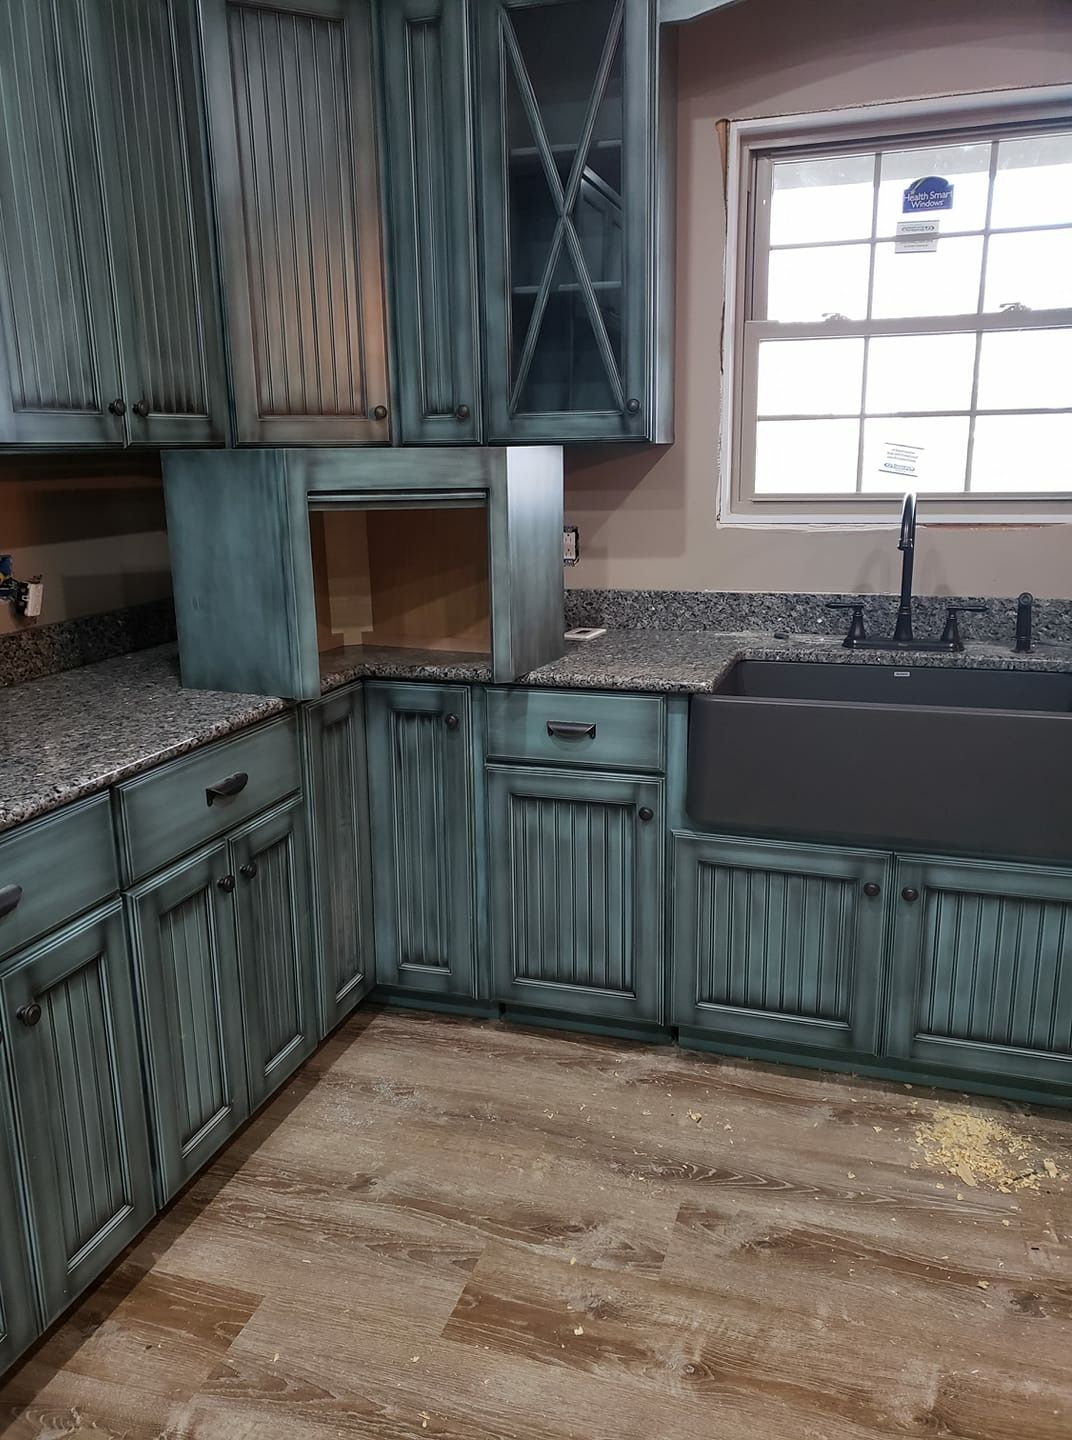 Pin By David White On House Rustic Kitchen Rustic Kitchen Cabinets Rustic House